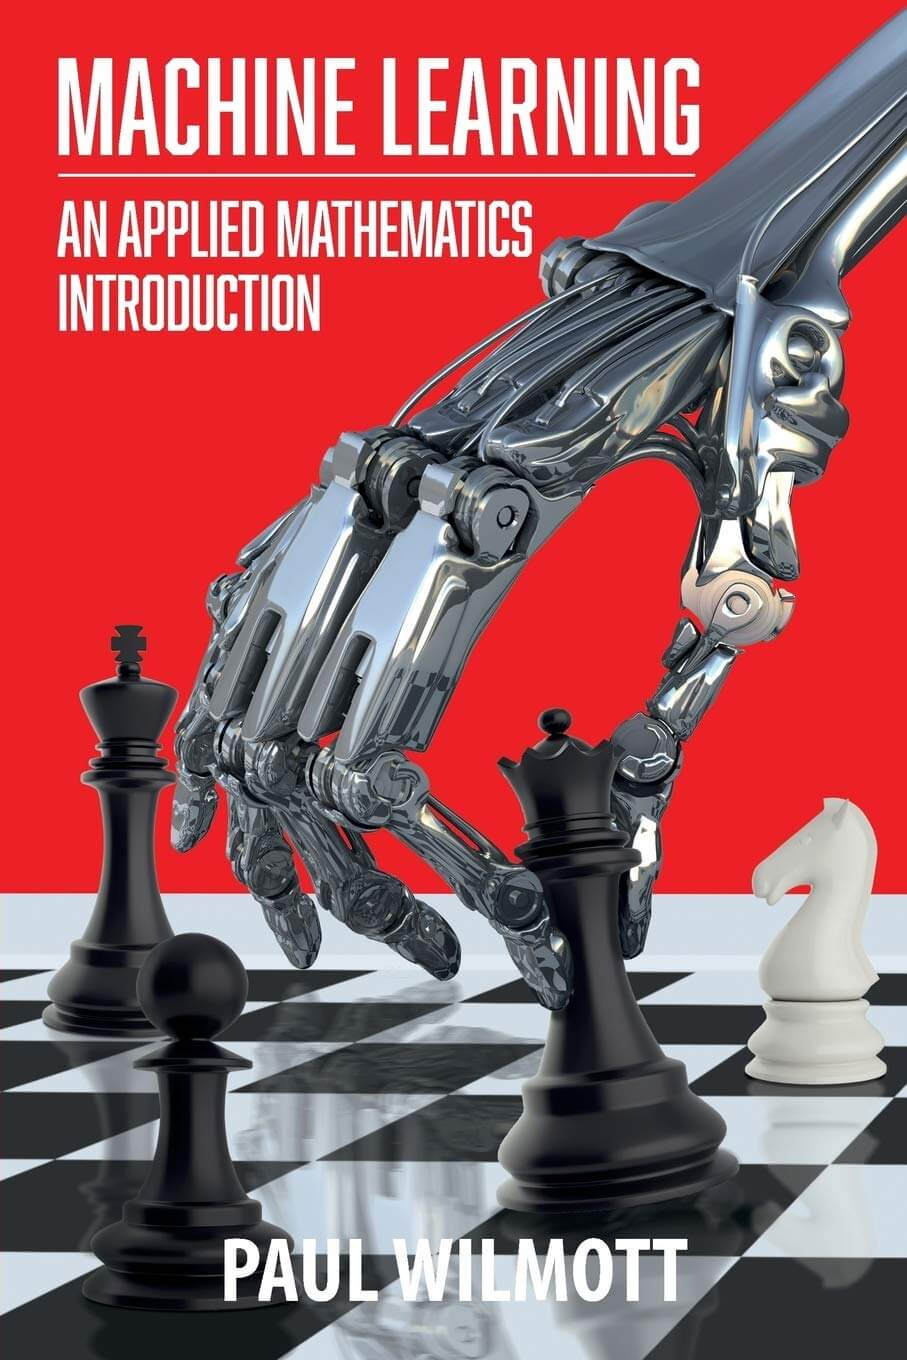 Machine Learning: An Applied Mathematics Introduction